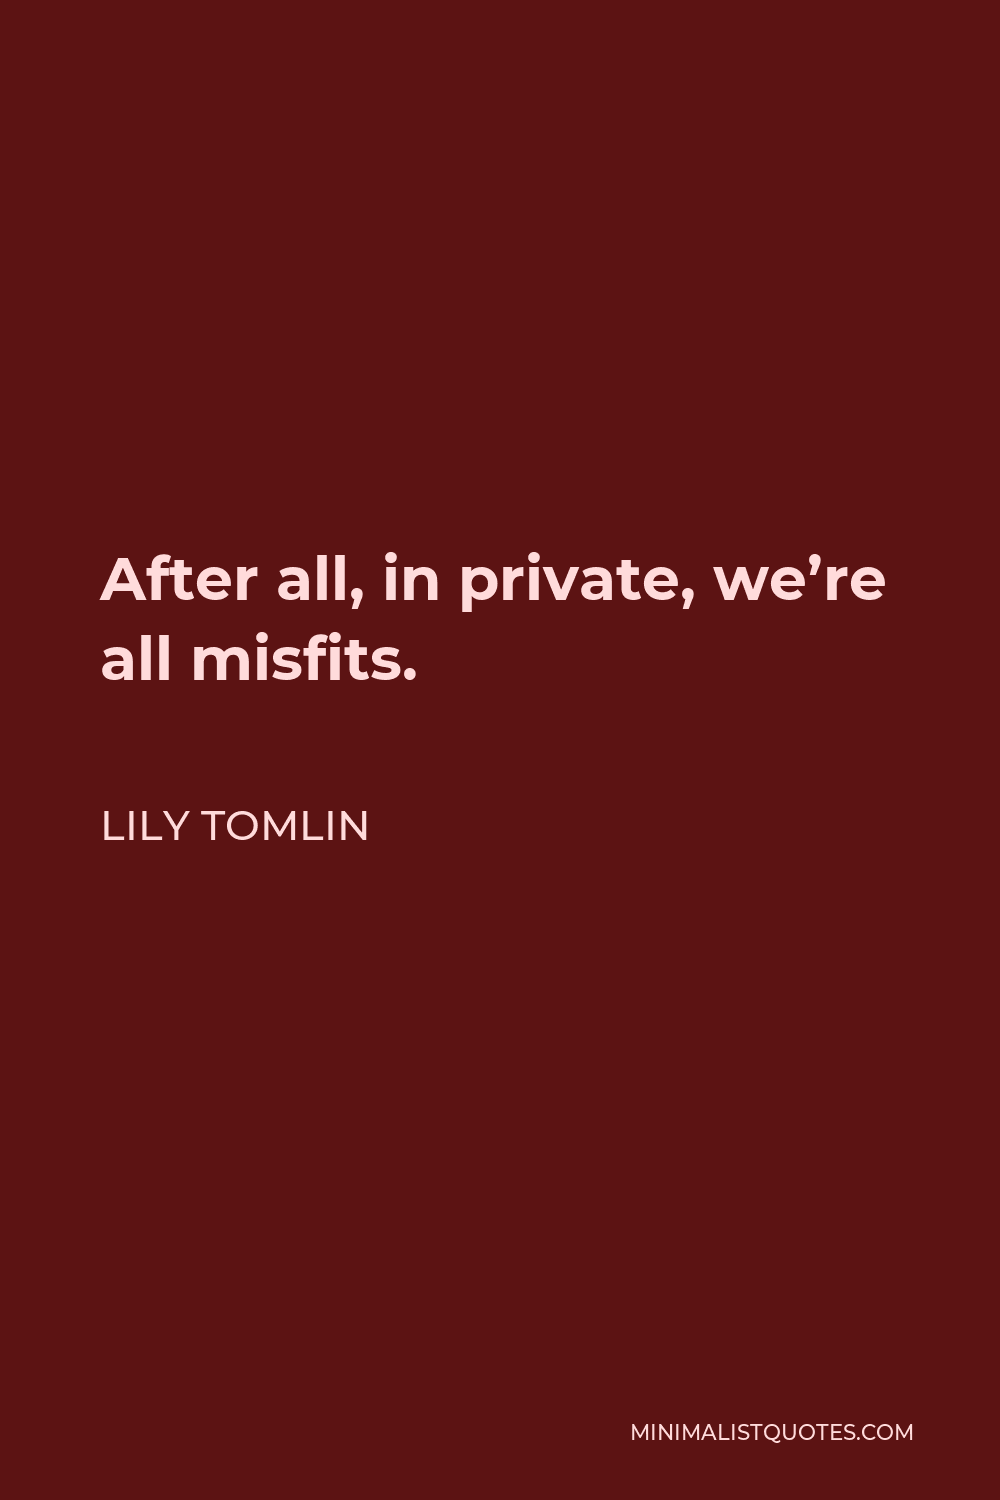 Lily Tomlin Quote - After all, in private, we're all misfits.